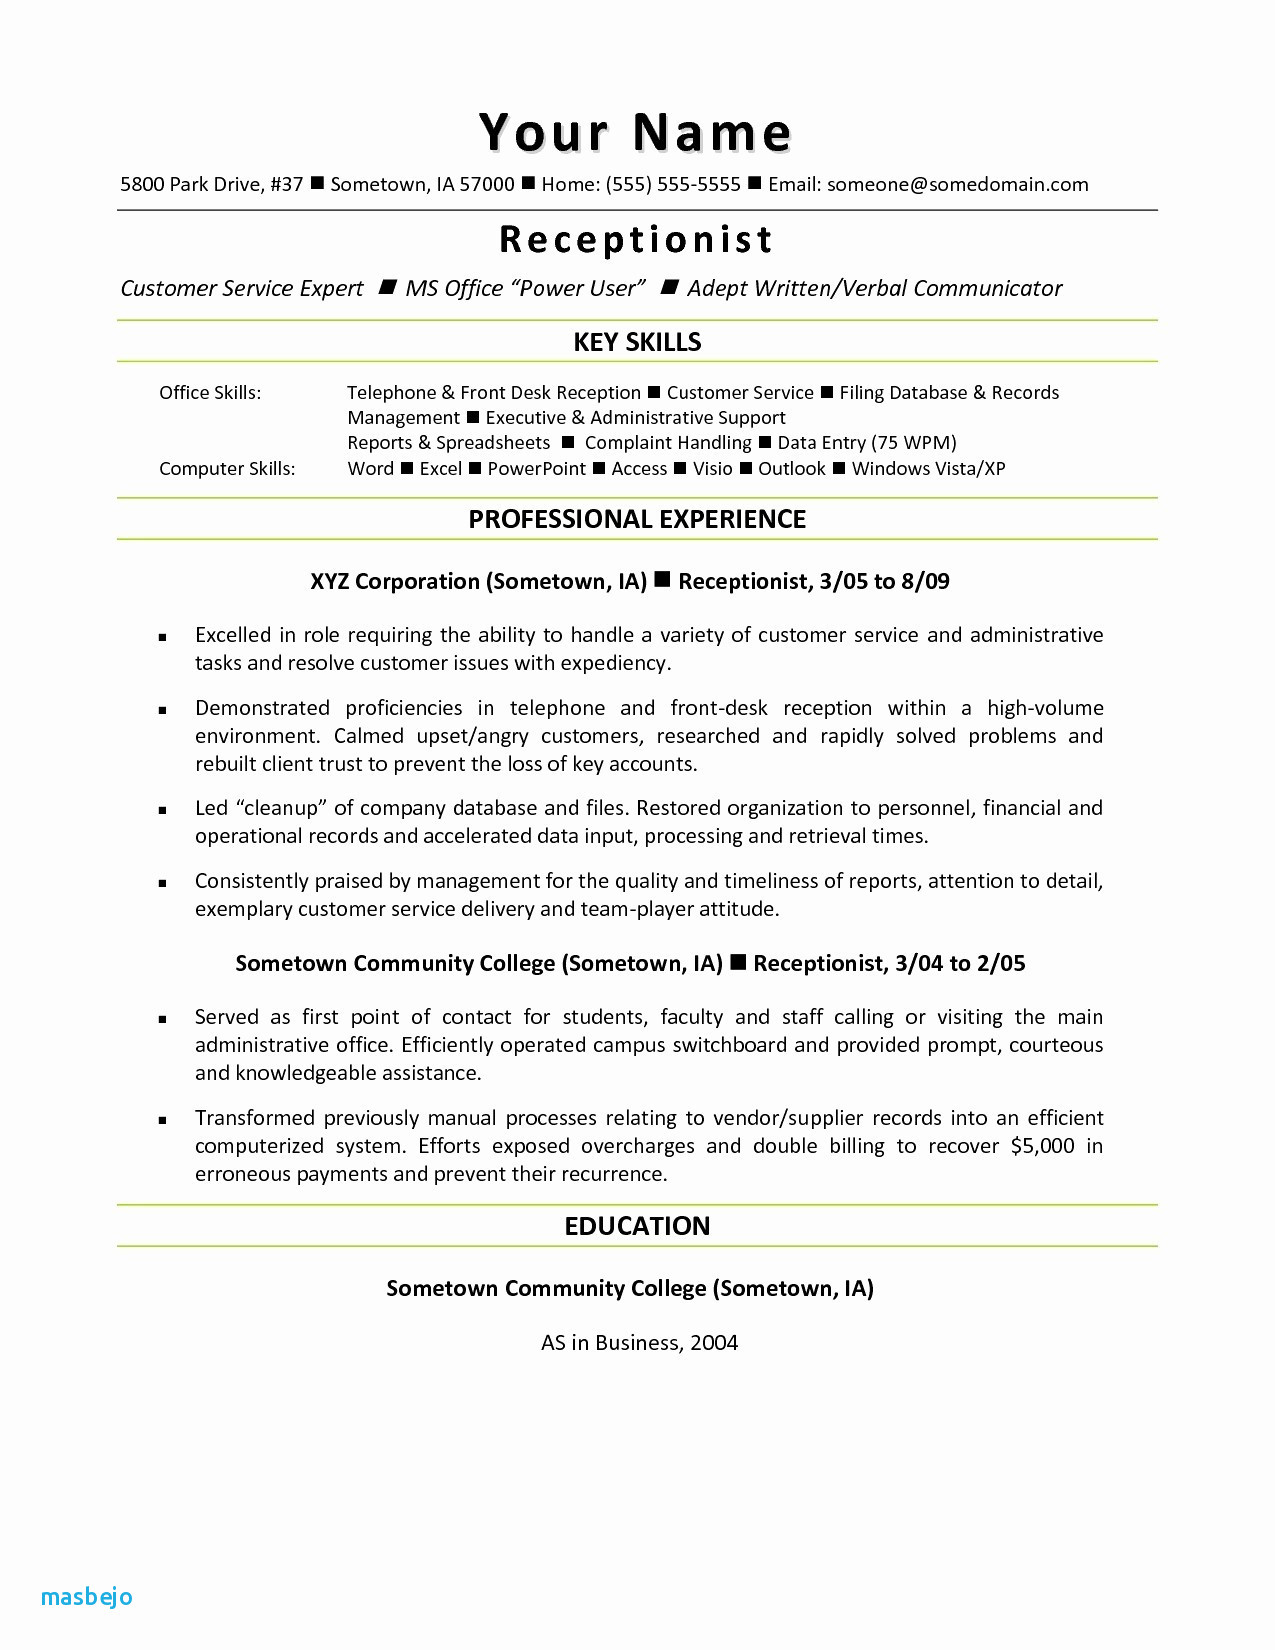 Resume for Construction Worker - Construction Worker Resume Resume